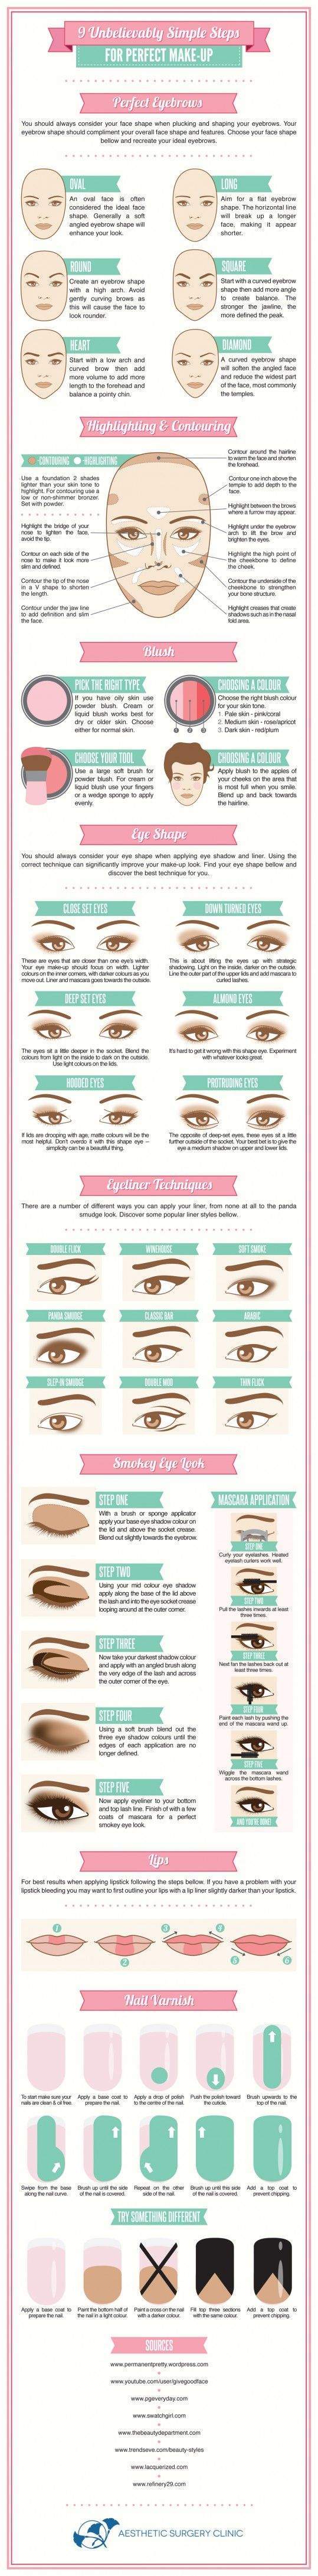 9 Unbelievably Simple Steps For Perfect Make-Up shared by your friends at VIPTanSalon.com in St. Louis MO.